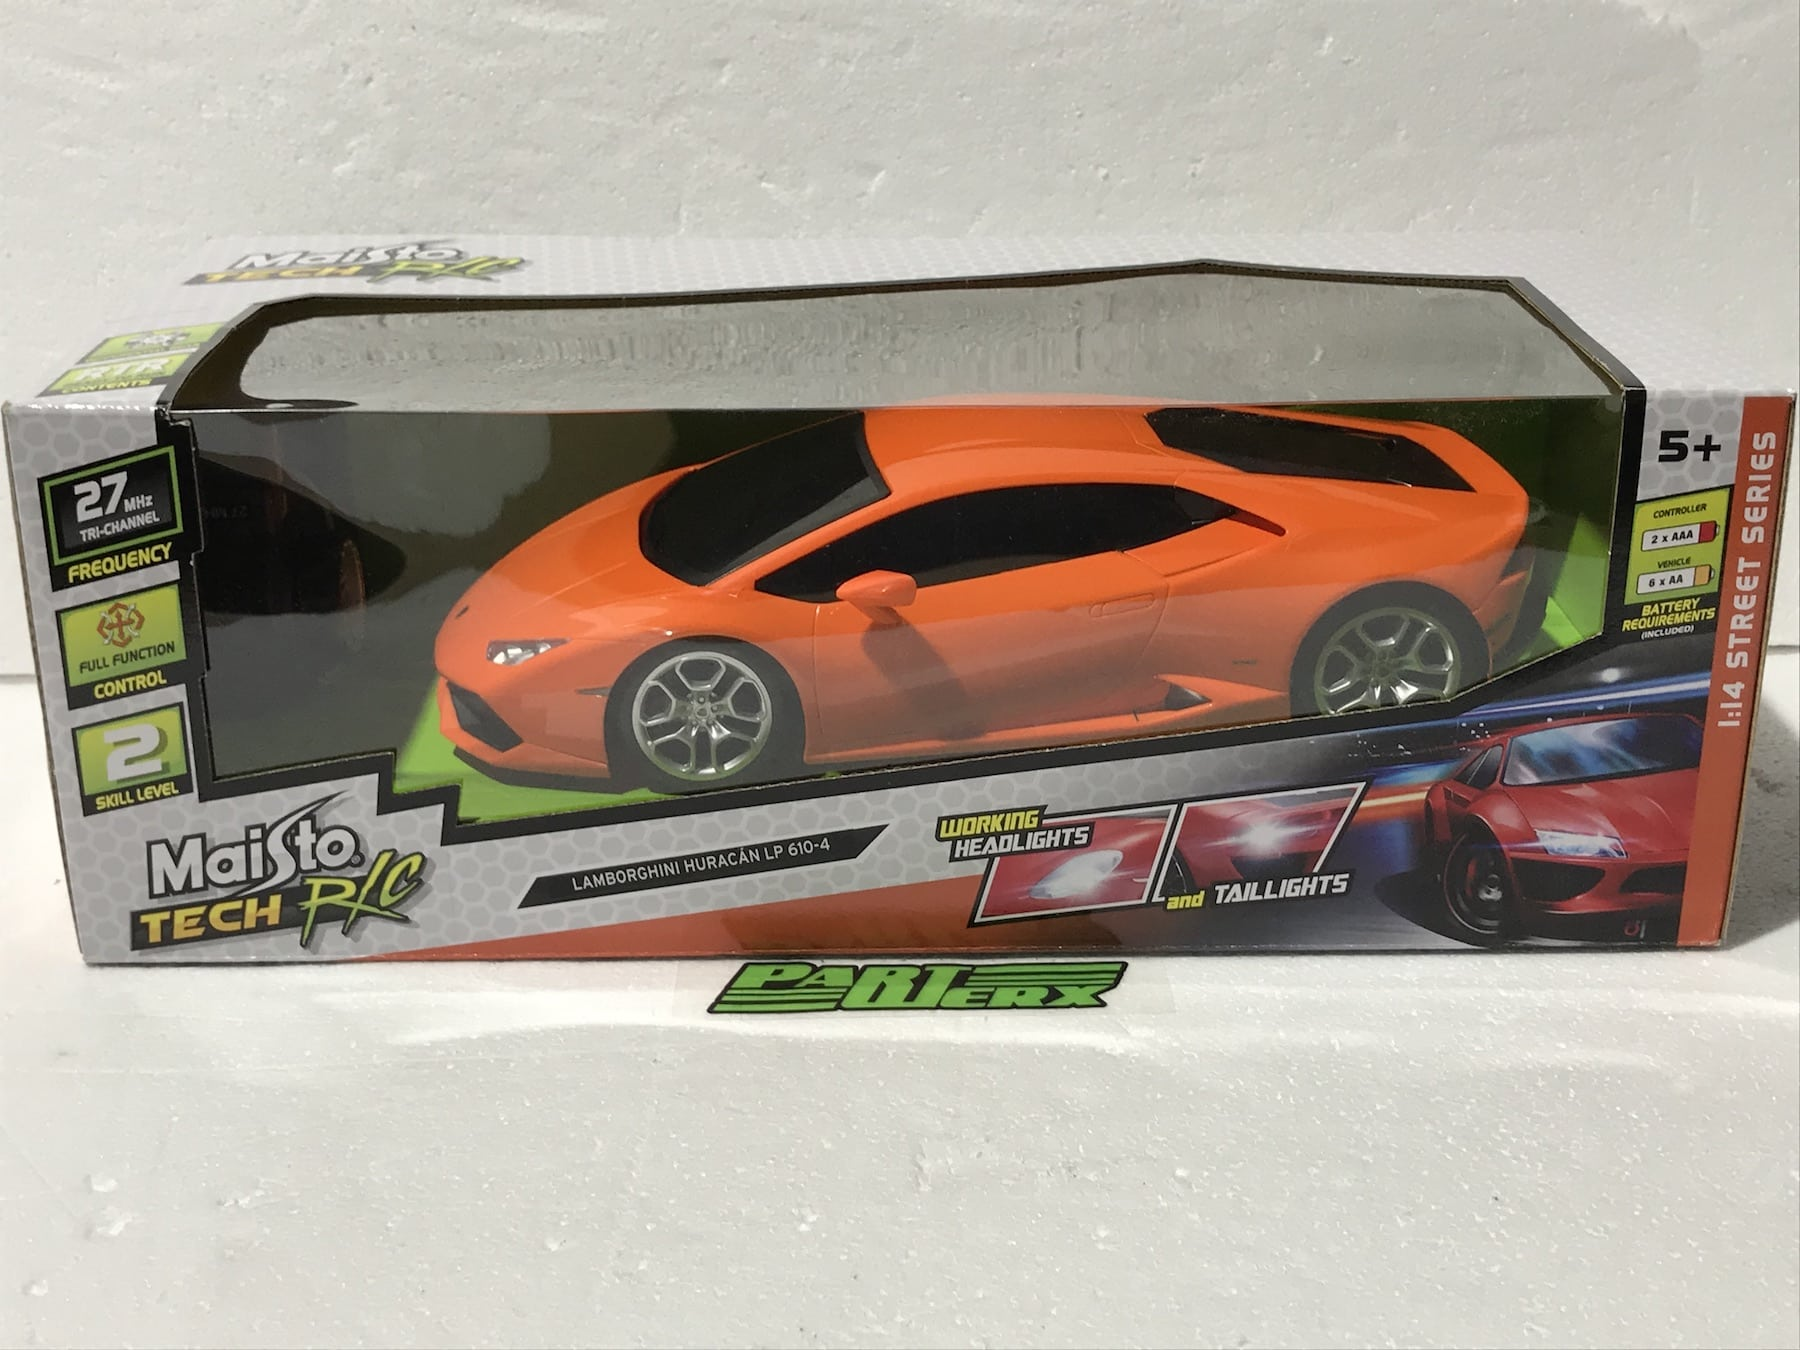 Lamborghini Huracan LP610-4 1:14 RC Radio Controlled Scale Model Car Kids Dads Gift Birthday Present